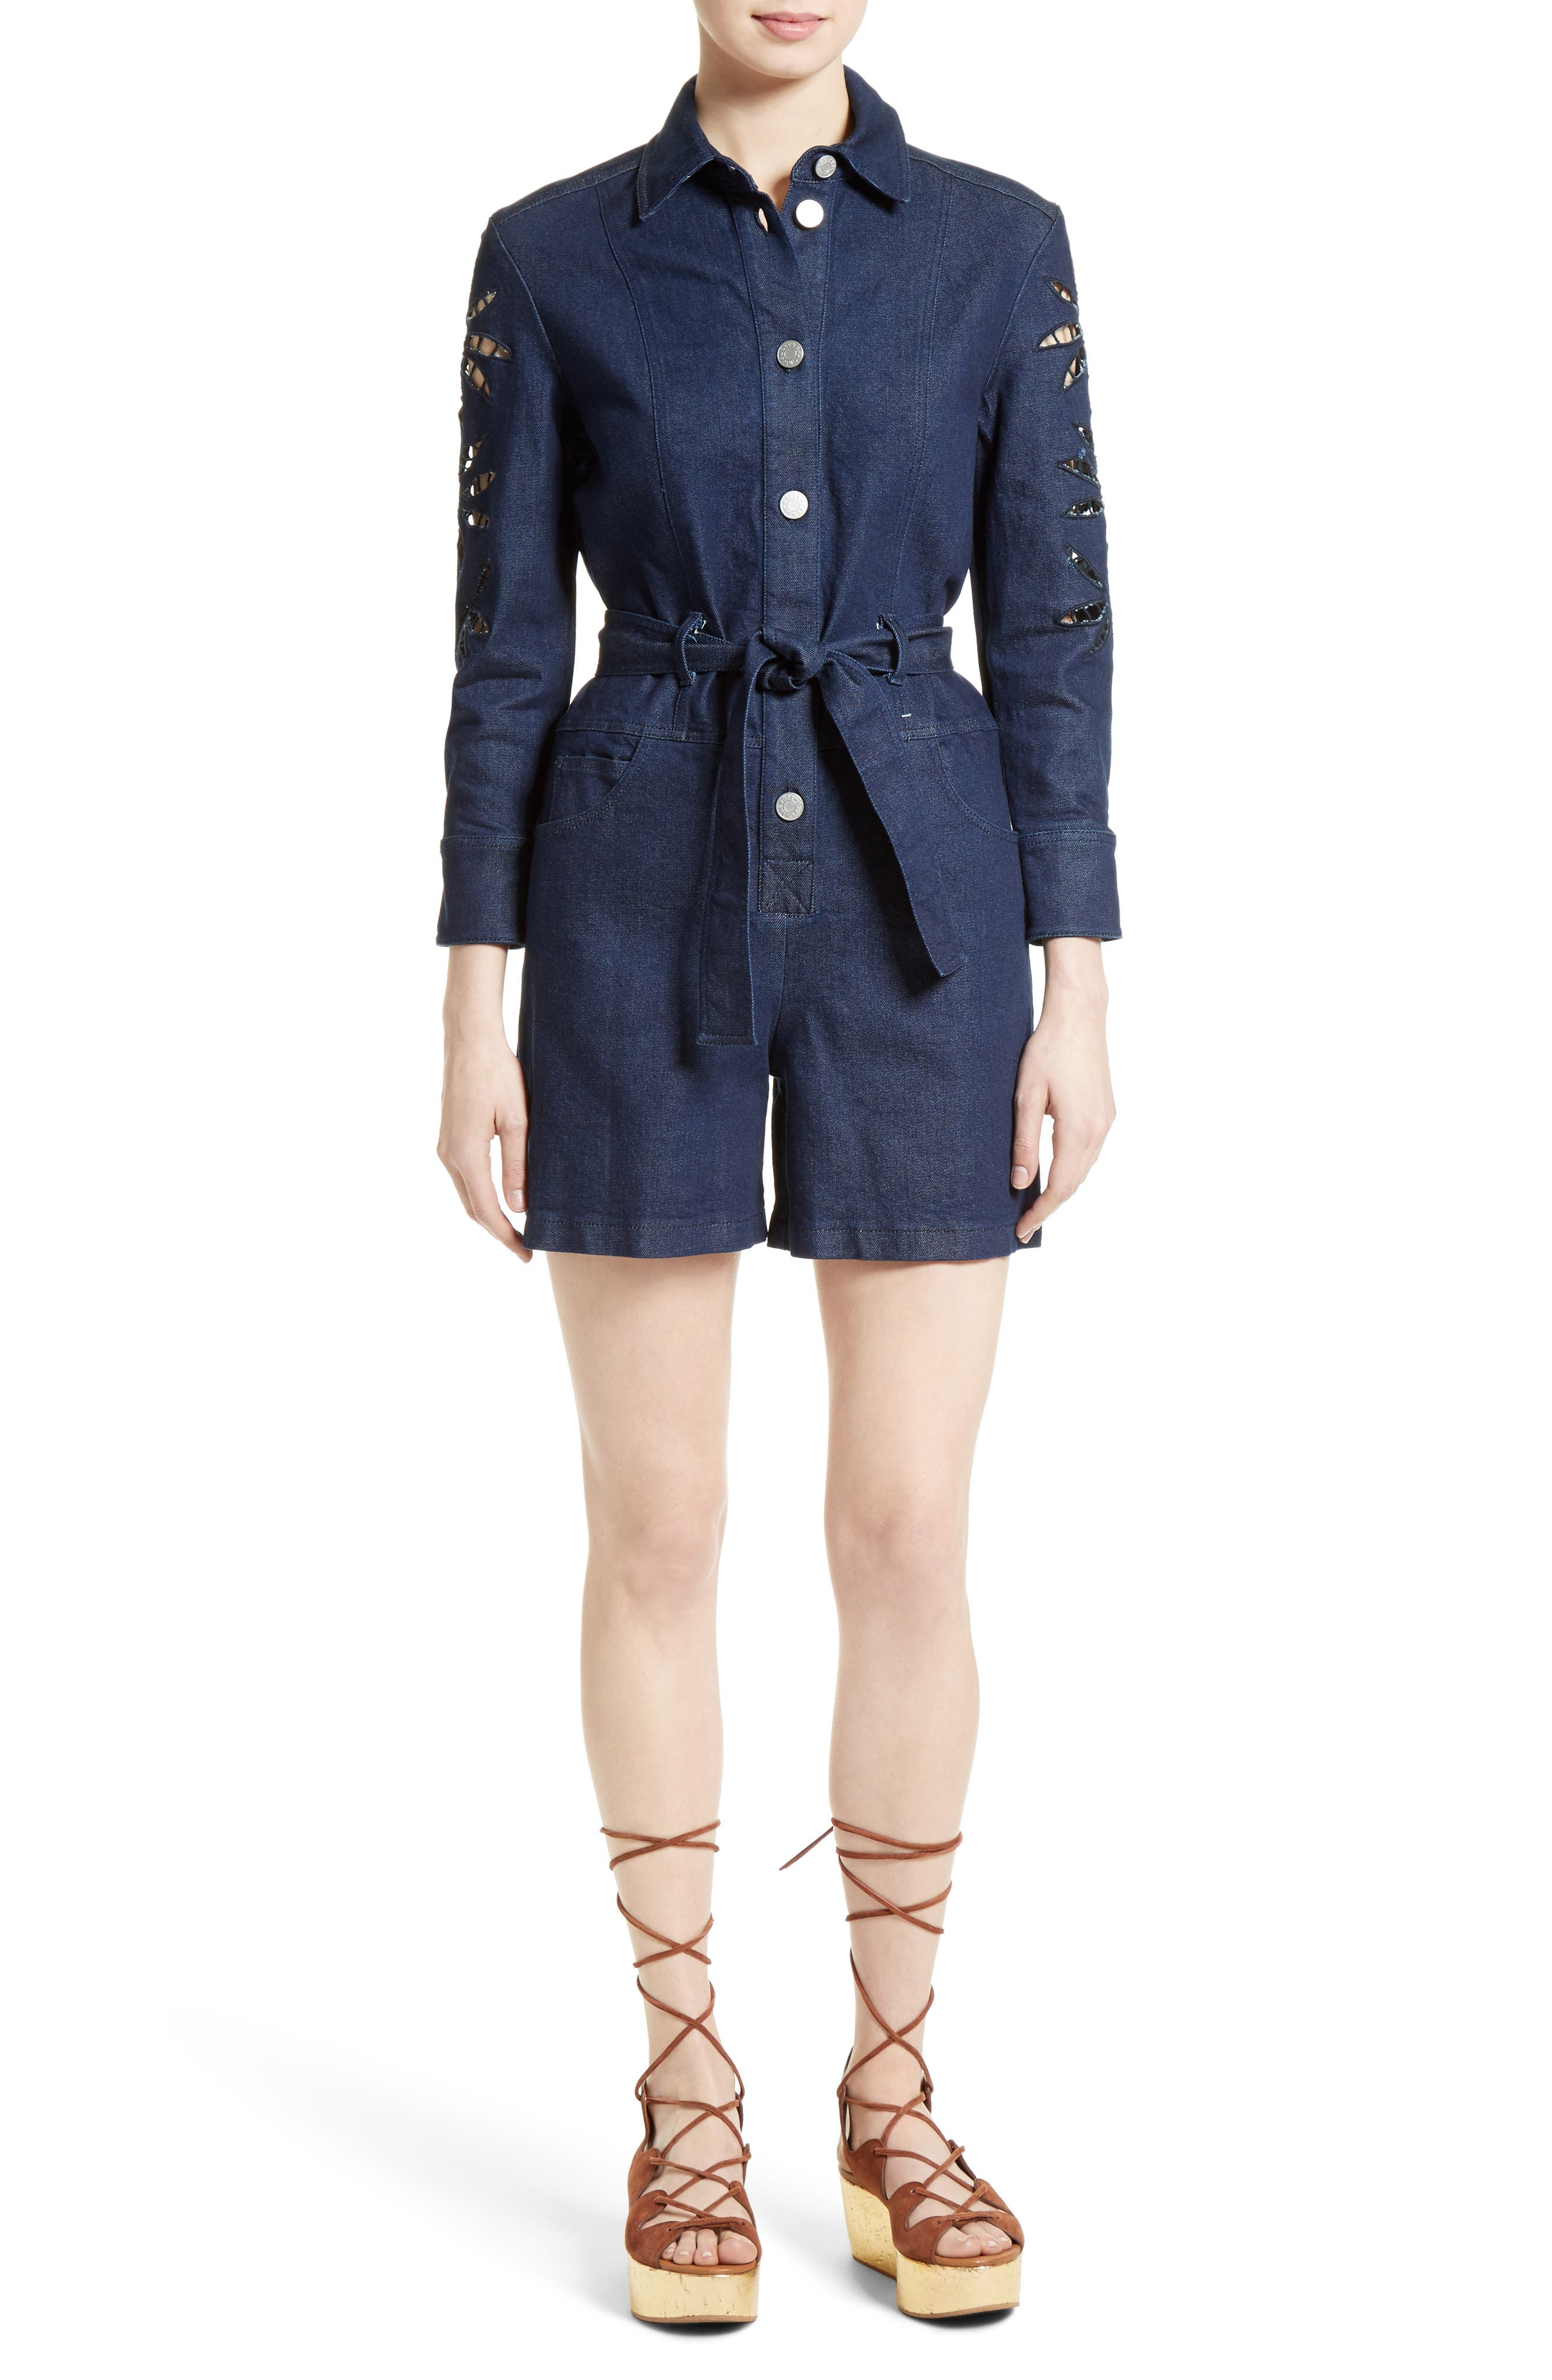 Alternate Image 1 Selected - See by Chloé Embroidered Denim Romper (Nordstrom Exclusive)